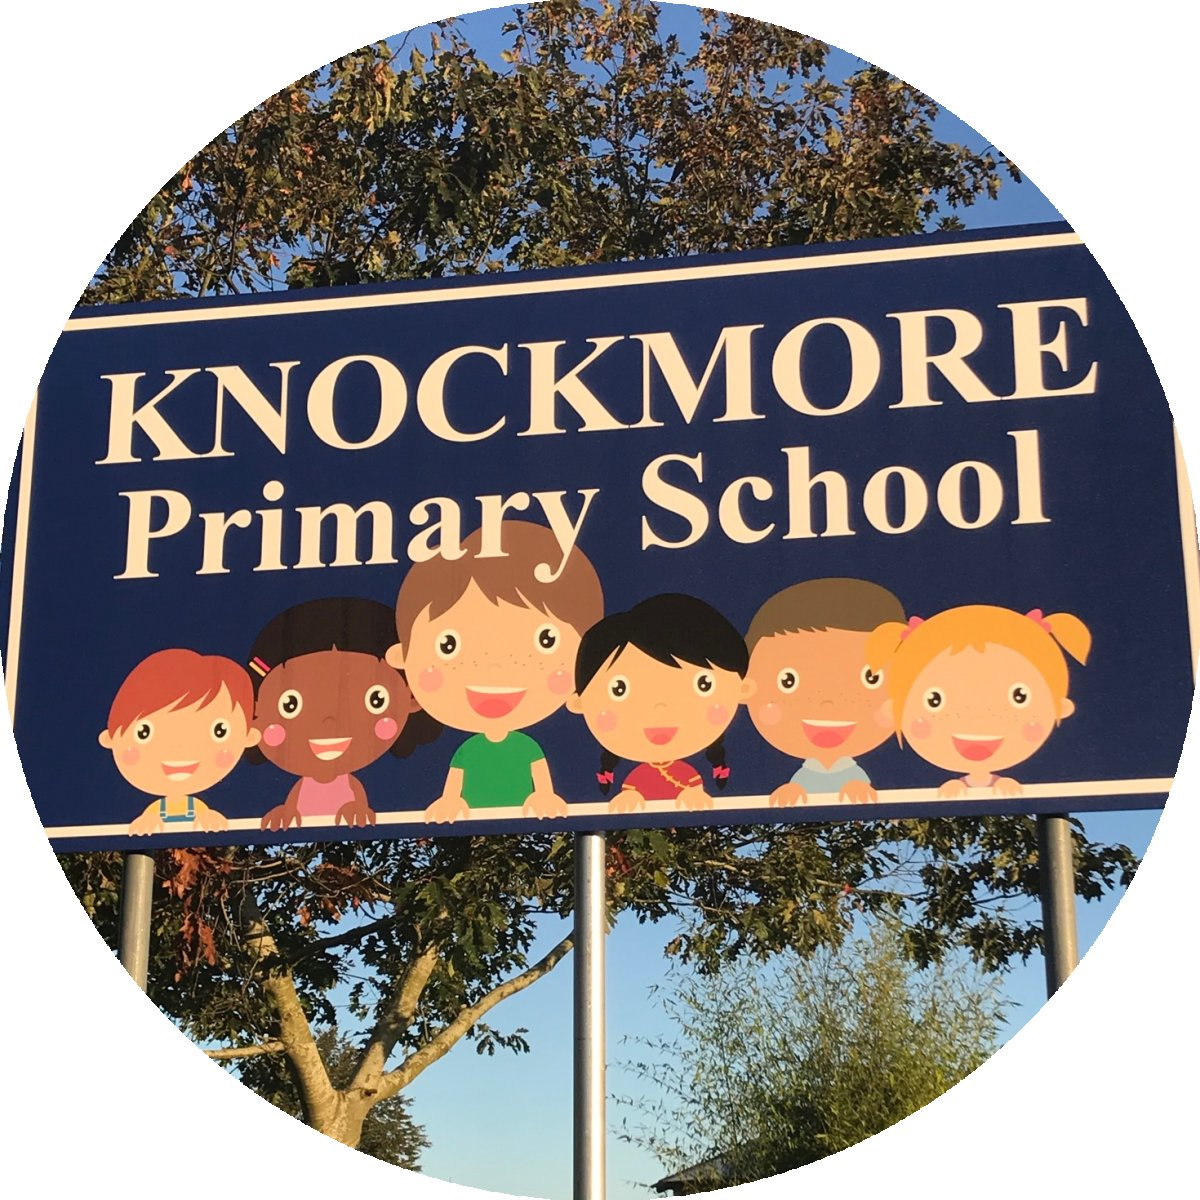 Knockmore Primary School's profile pic